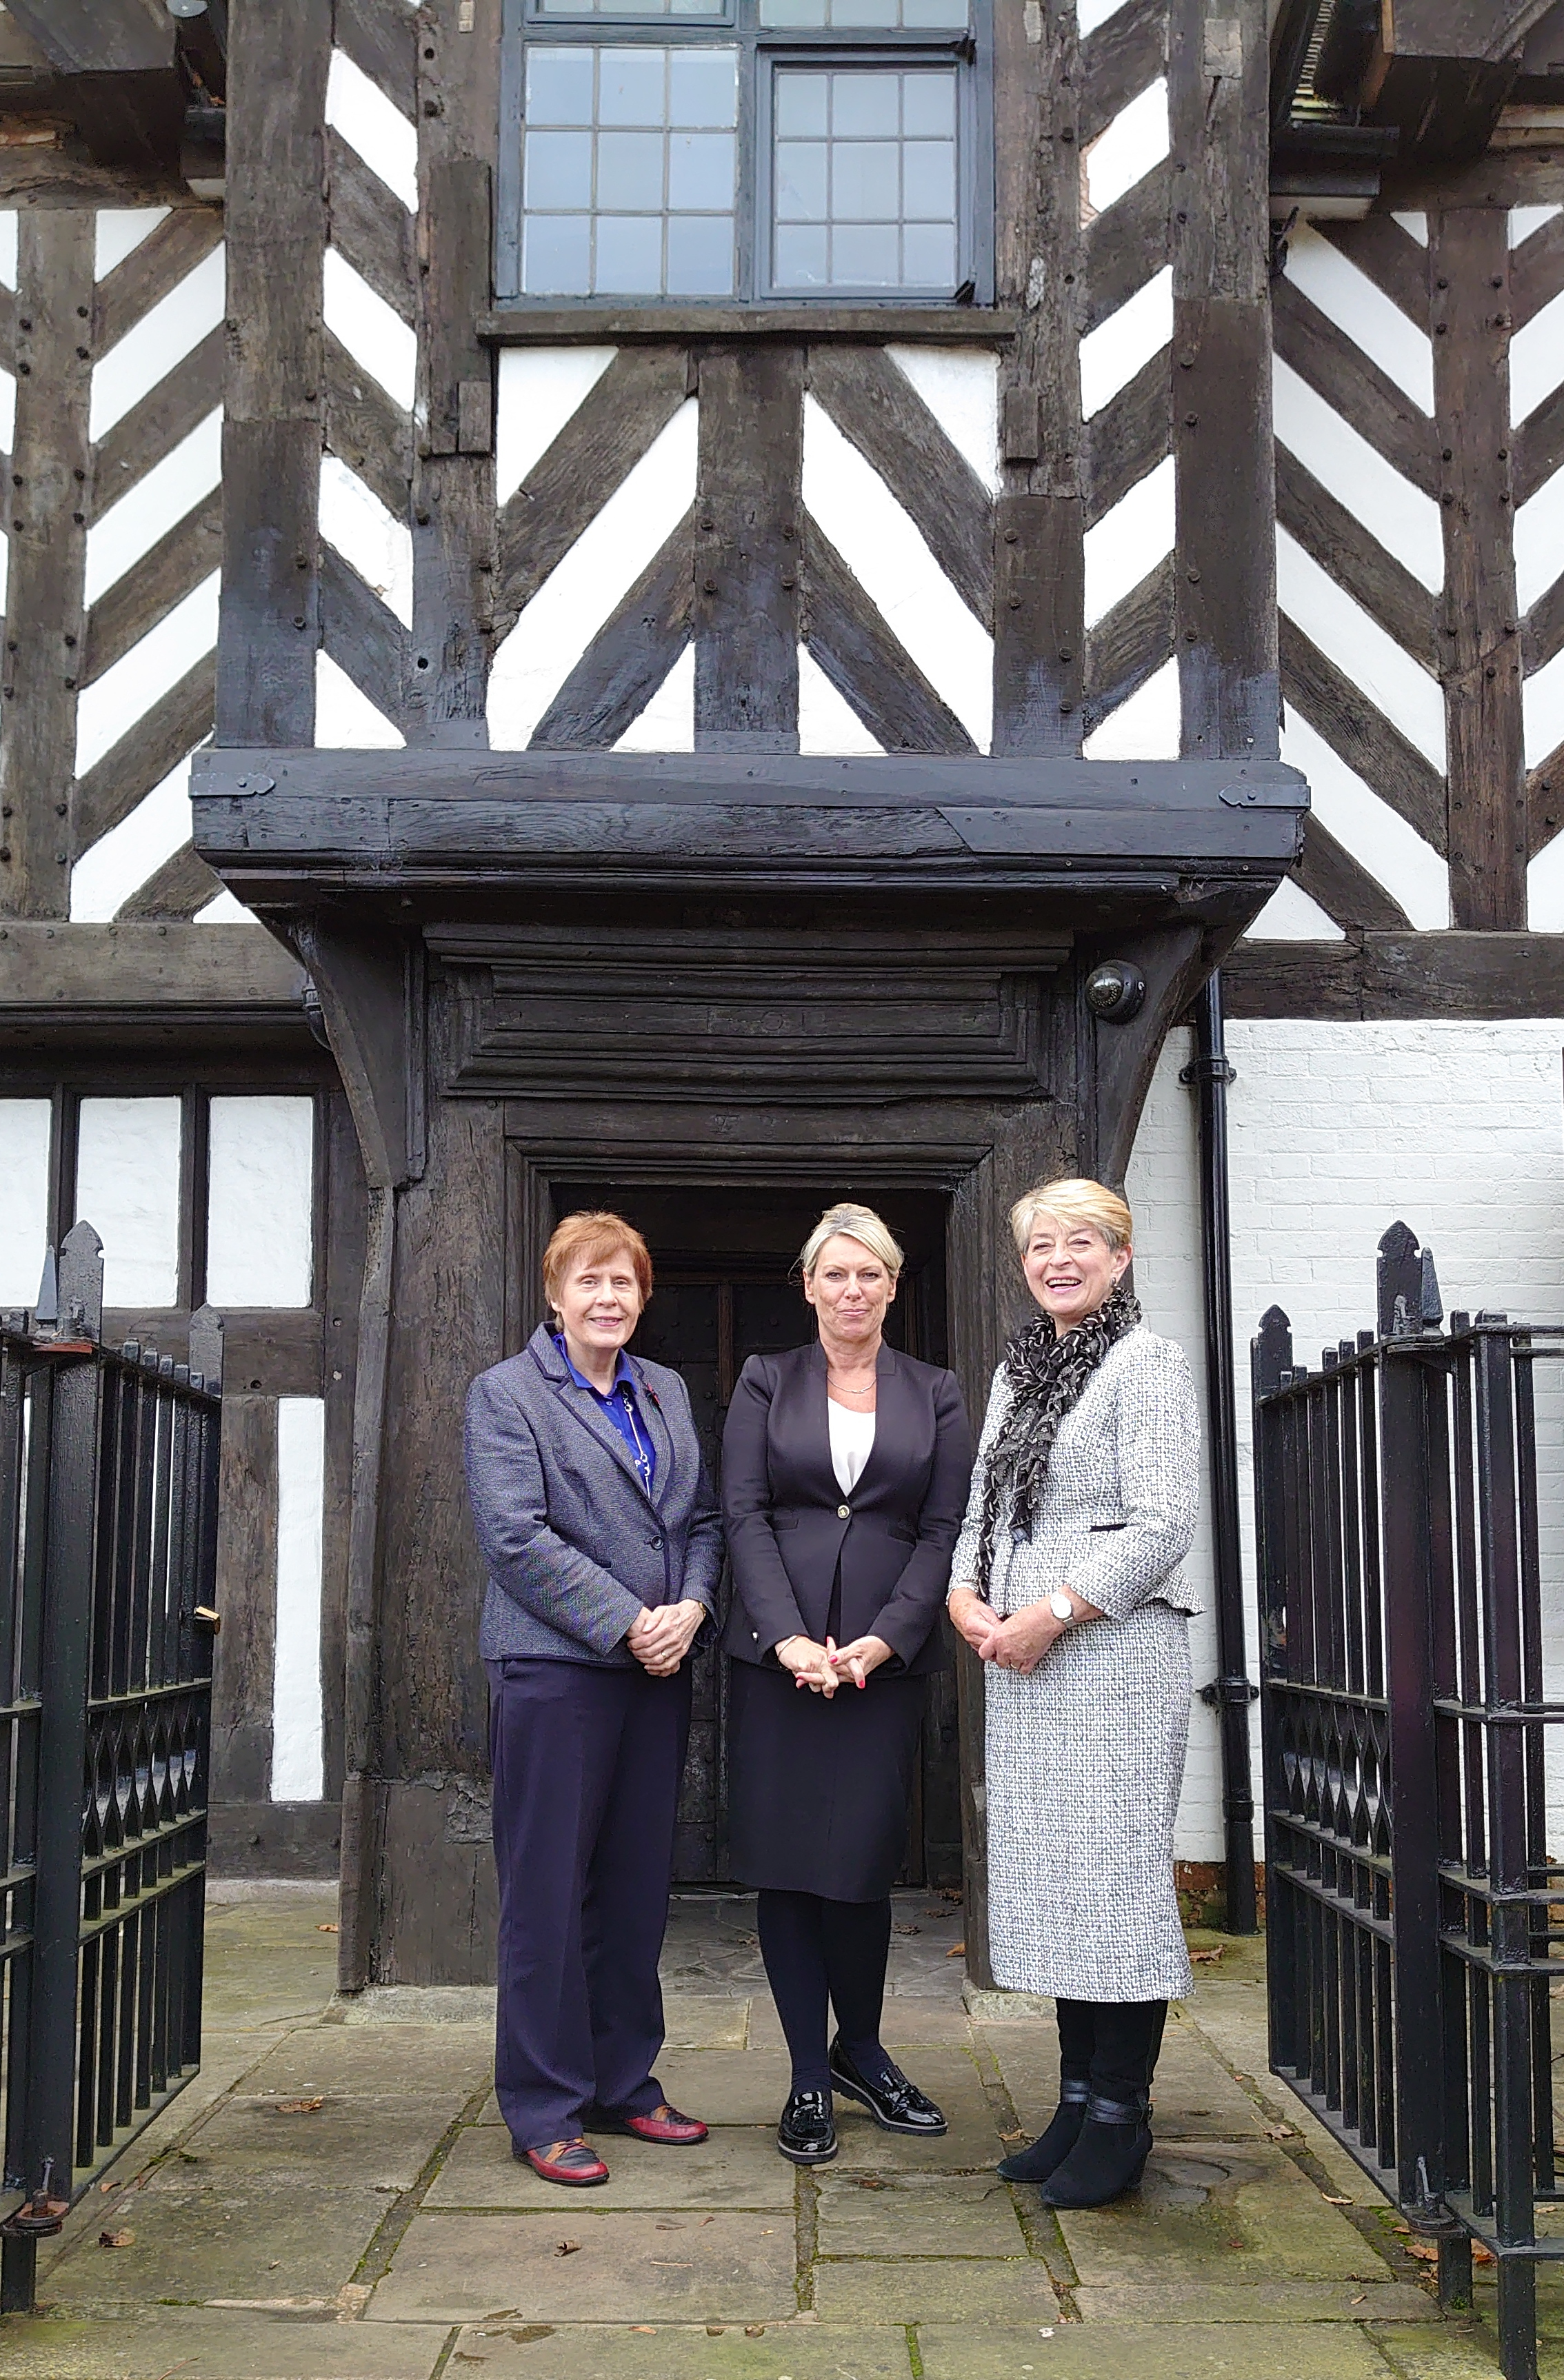 Elizabeth Phillips OBE, Alison Beachim and Kay Alexander MBE at Stratford House